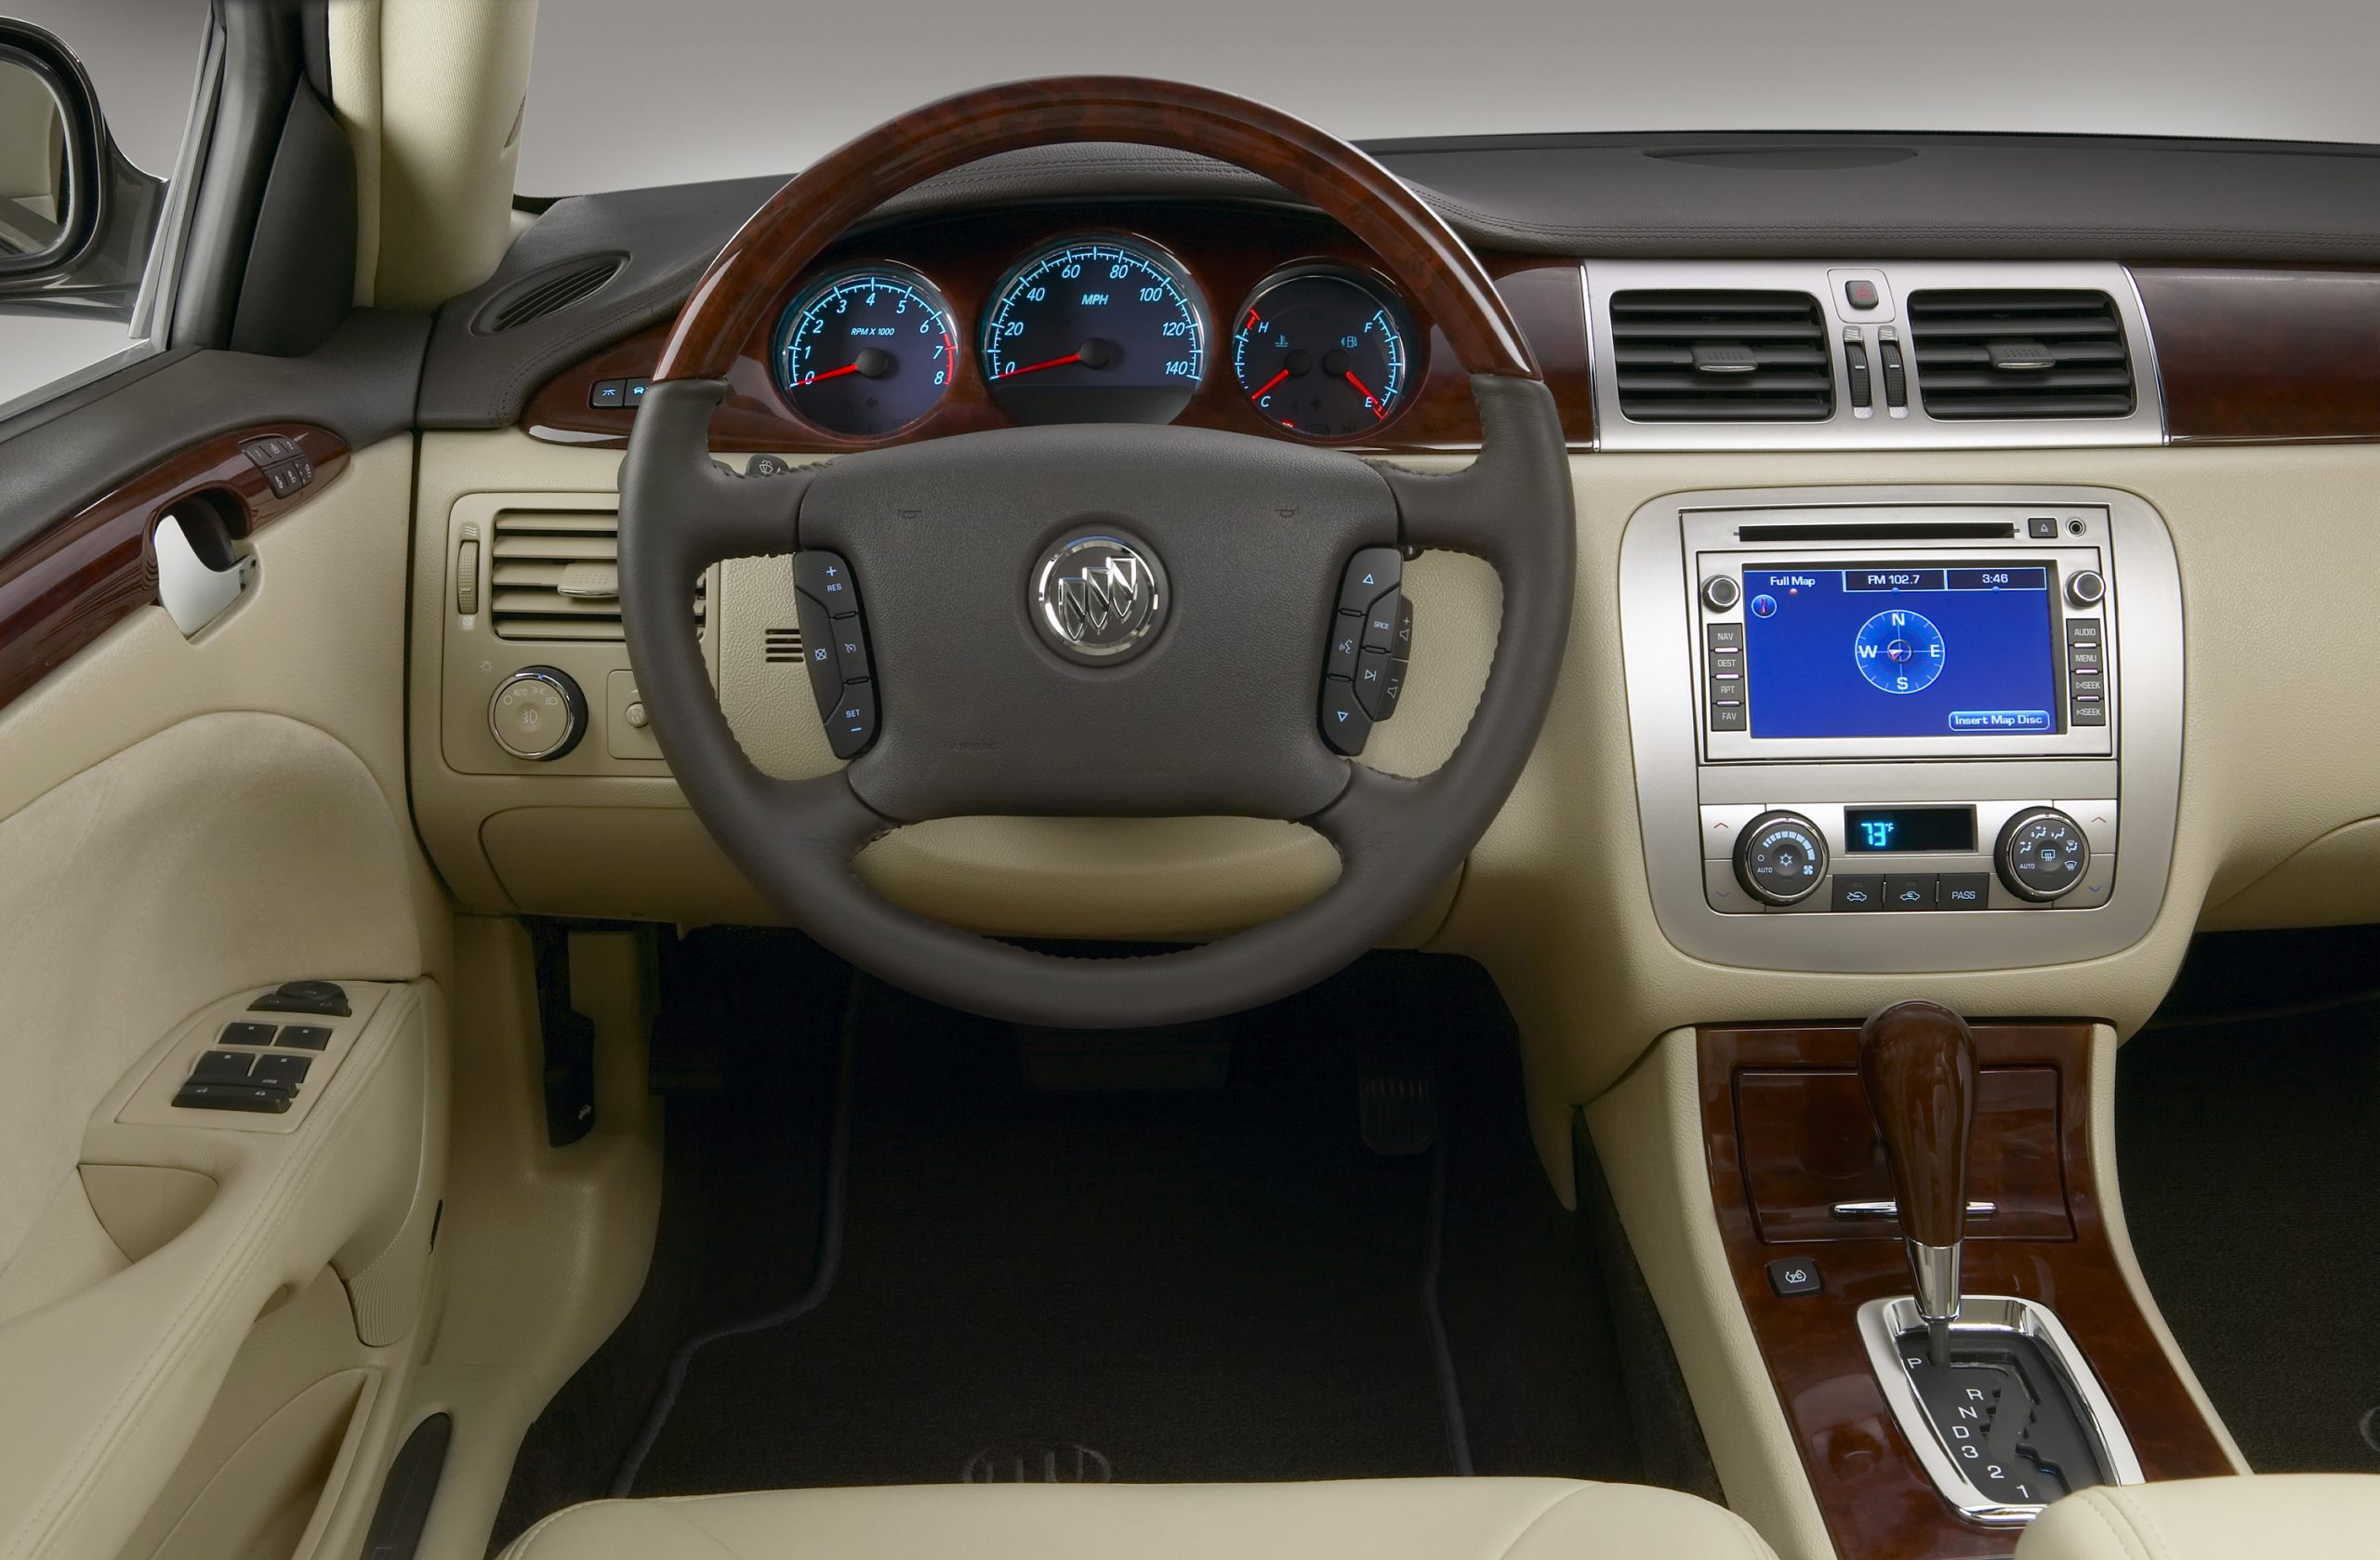 Are You Ready To Wave Goodbye To The Buick Lucerne? | Gm 2021 Buick Lucerne Models, Manual, Issues